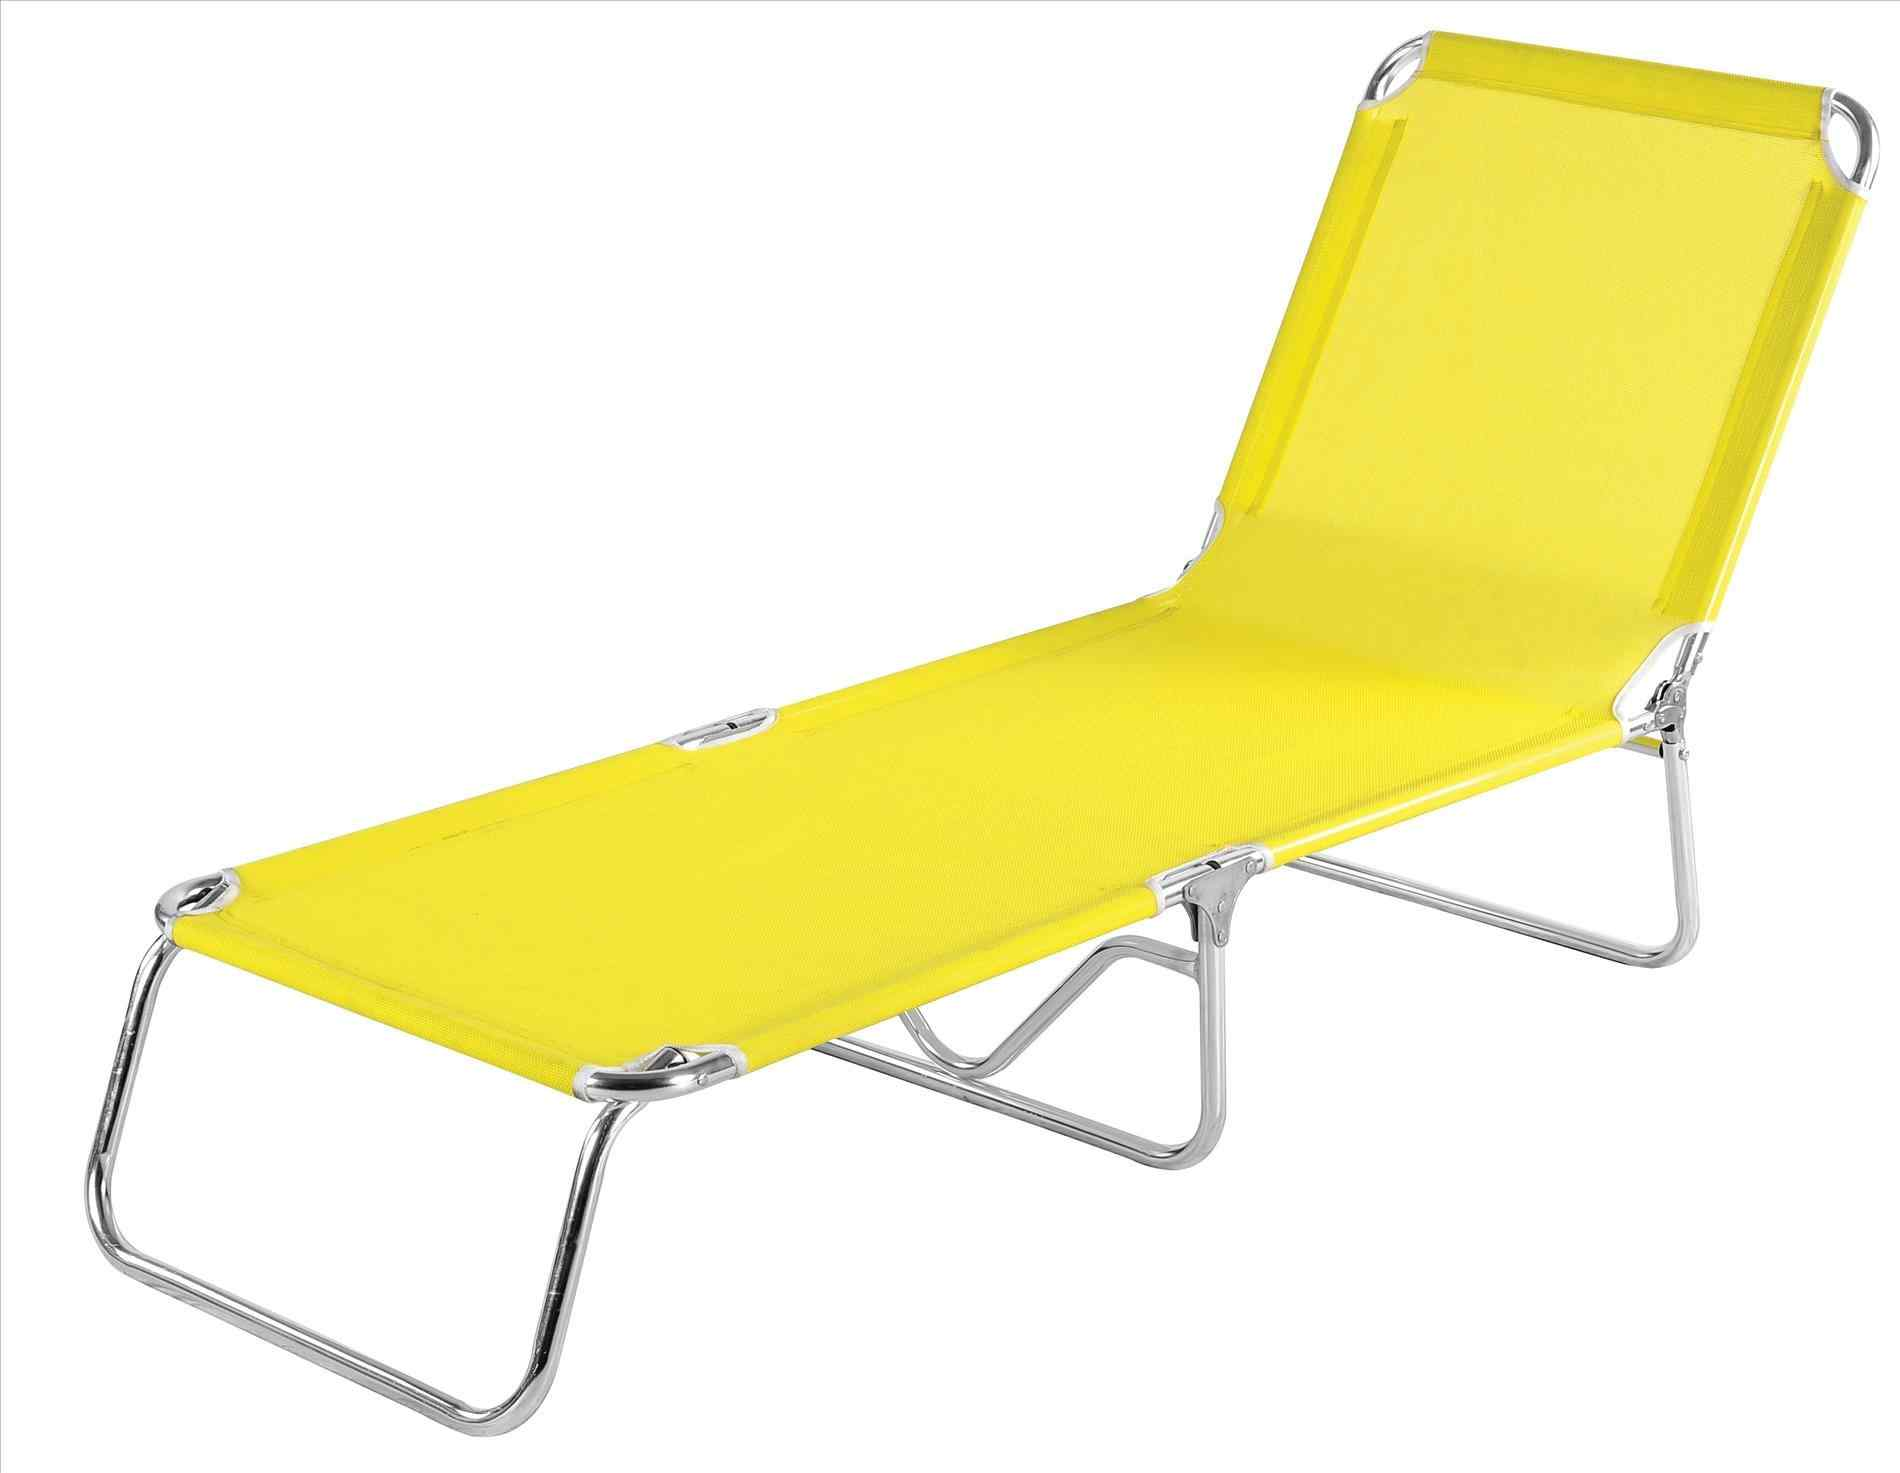 1900x1473 The Images Collection Of Powered Image Beach Lounge Chair Clipart